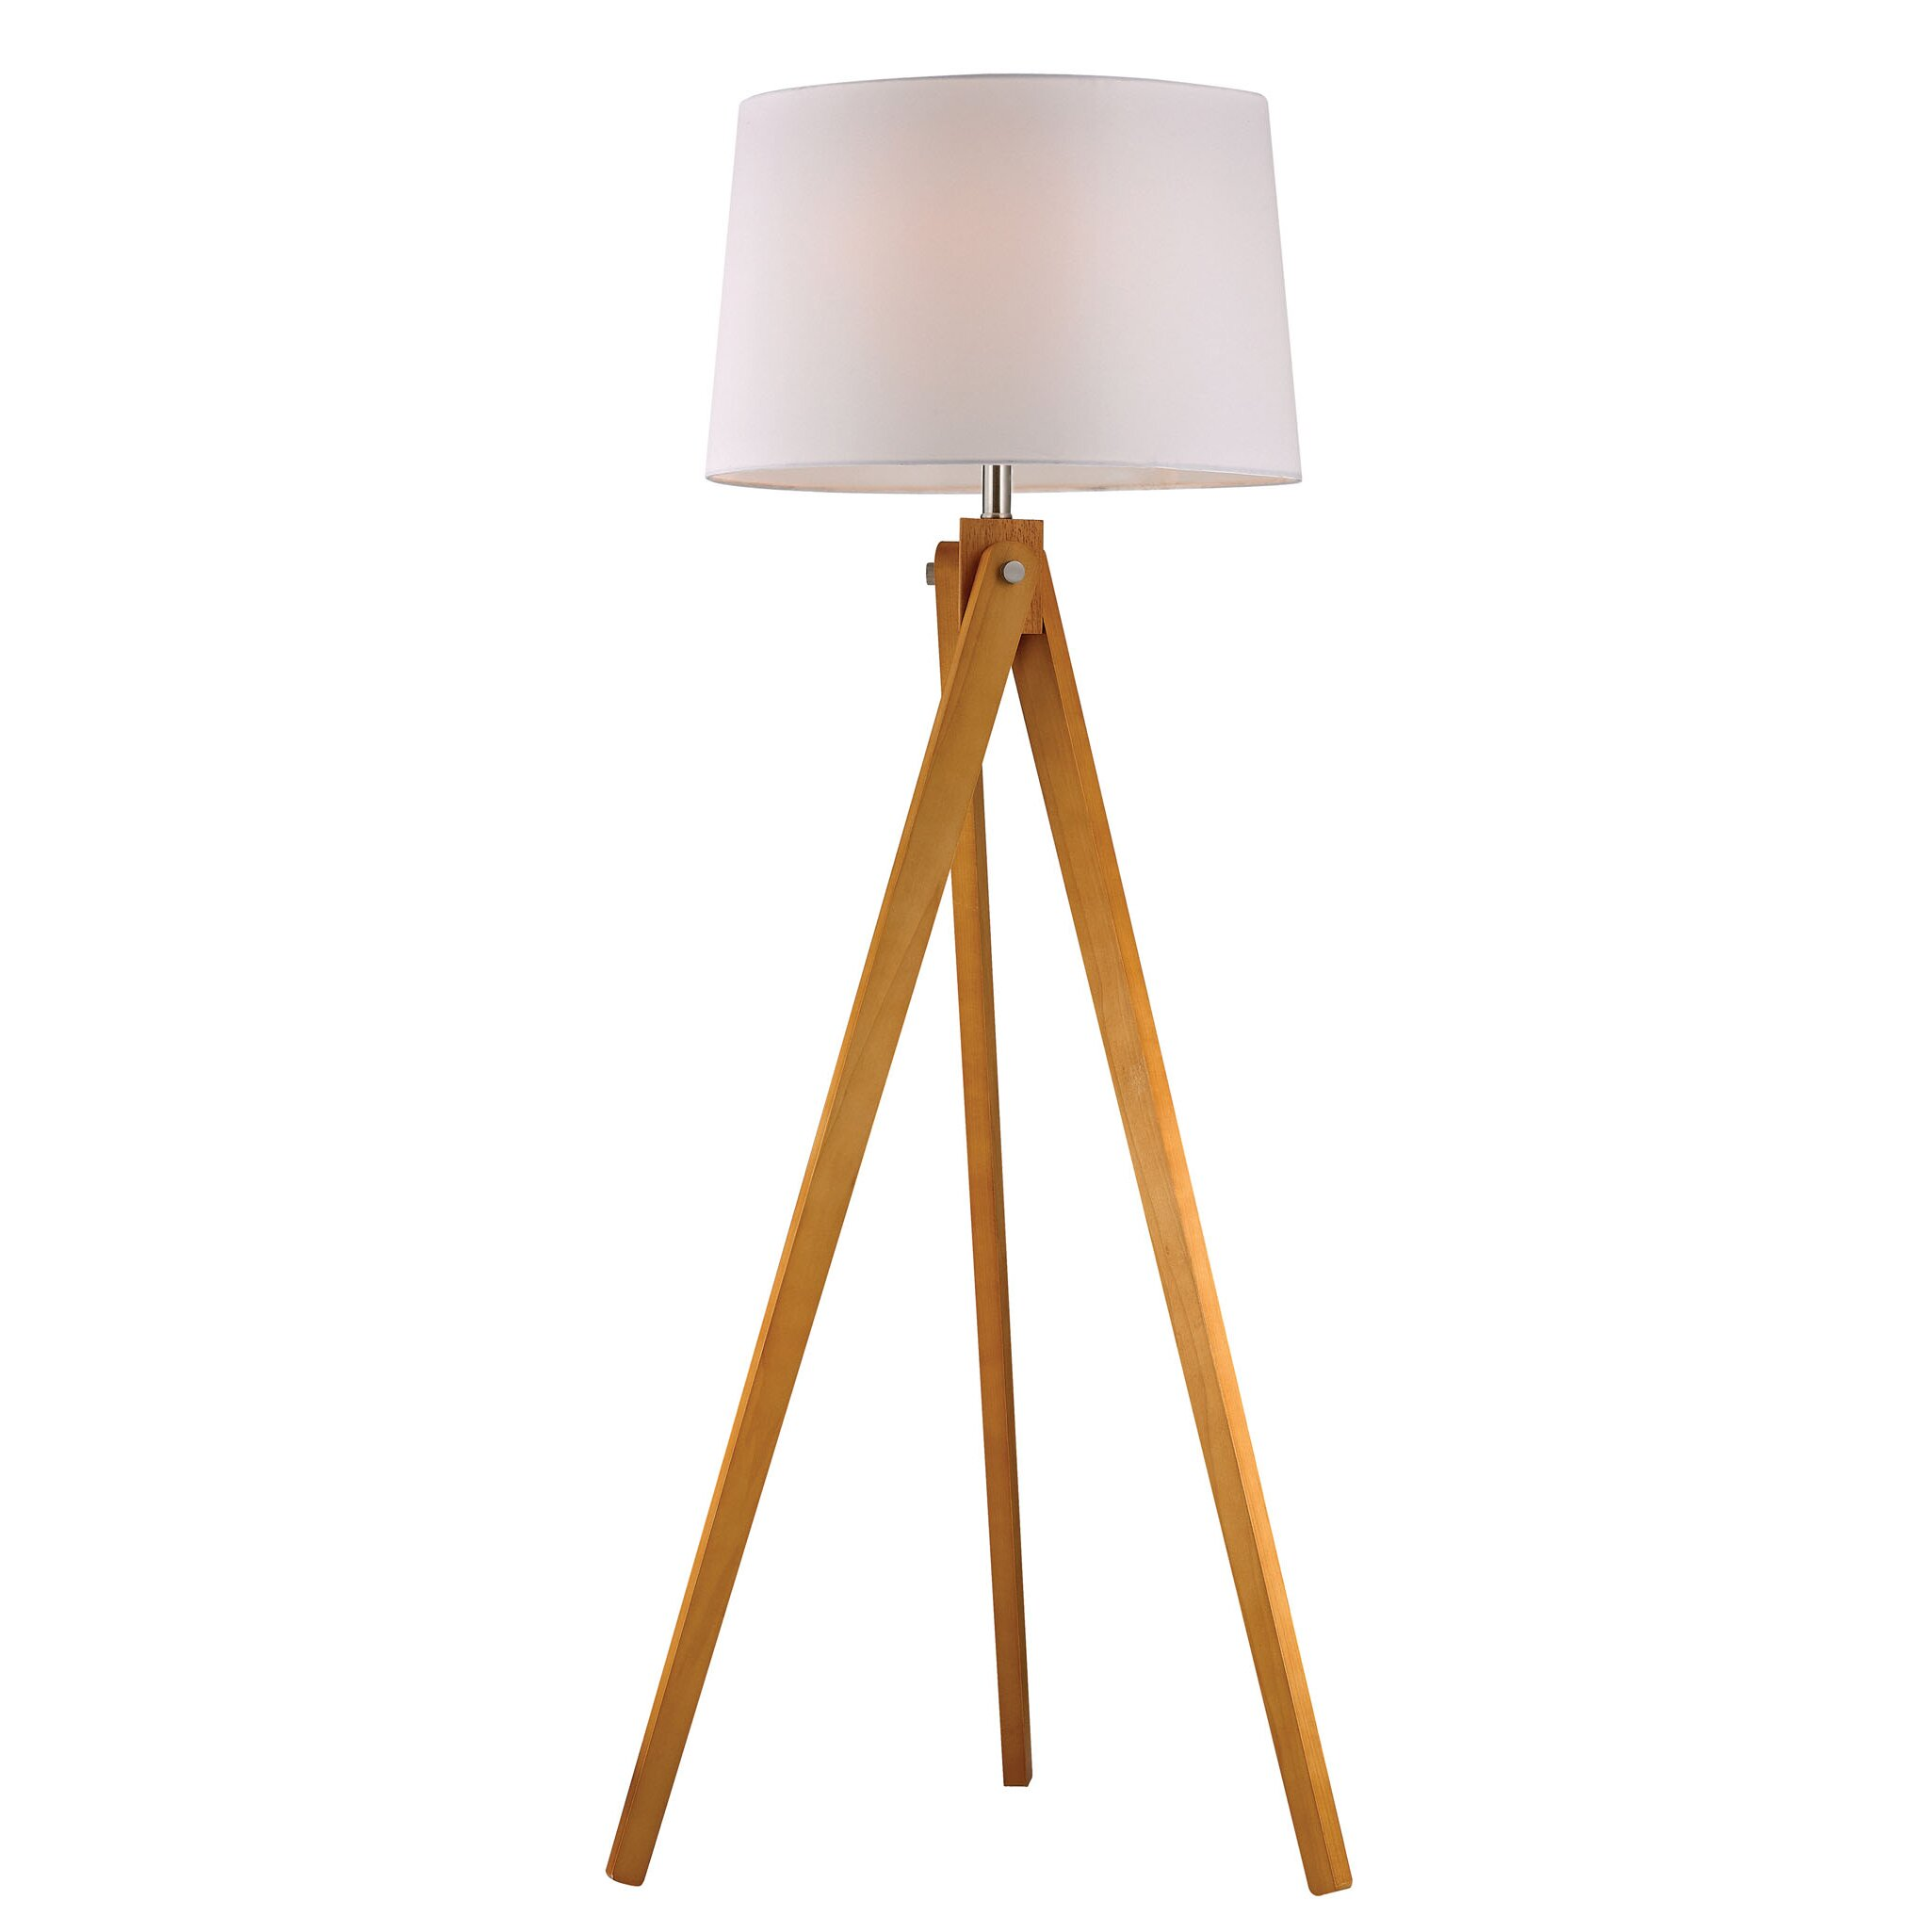 Langley Street Pelli 63 Quot Tripod Floor Lamp Amp Reviews Wayfair